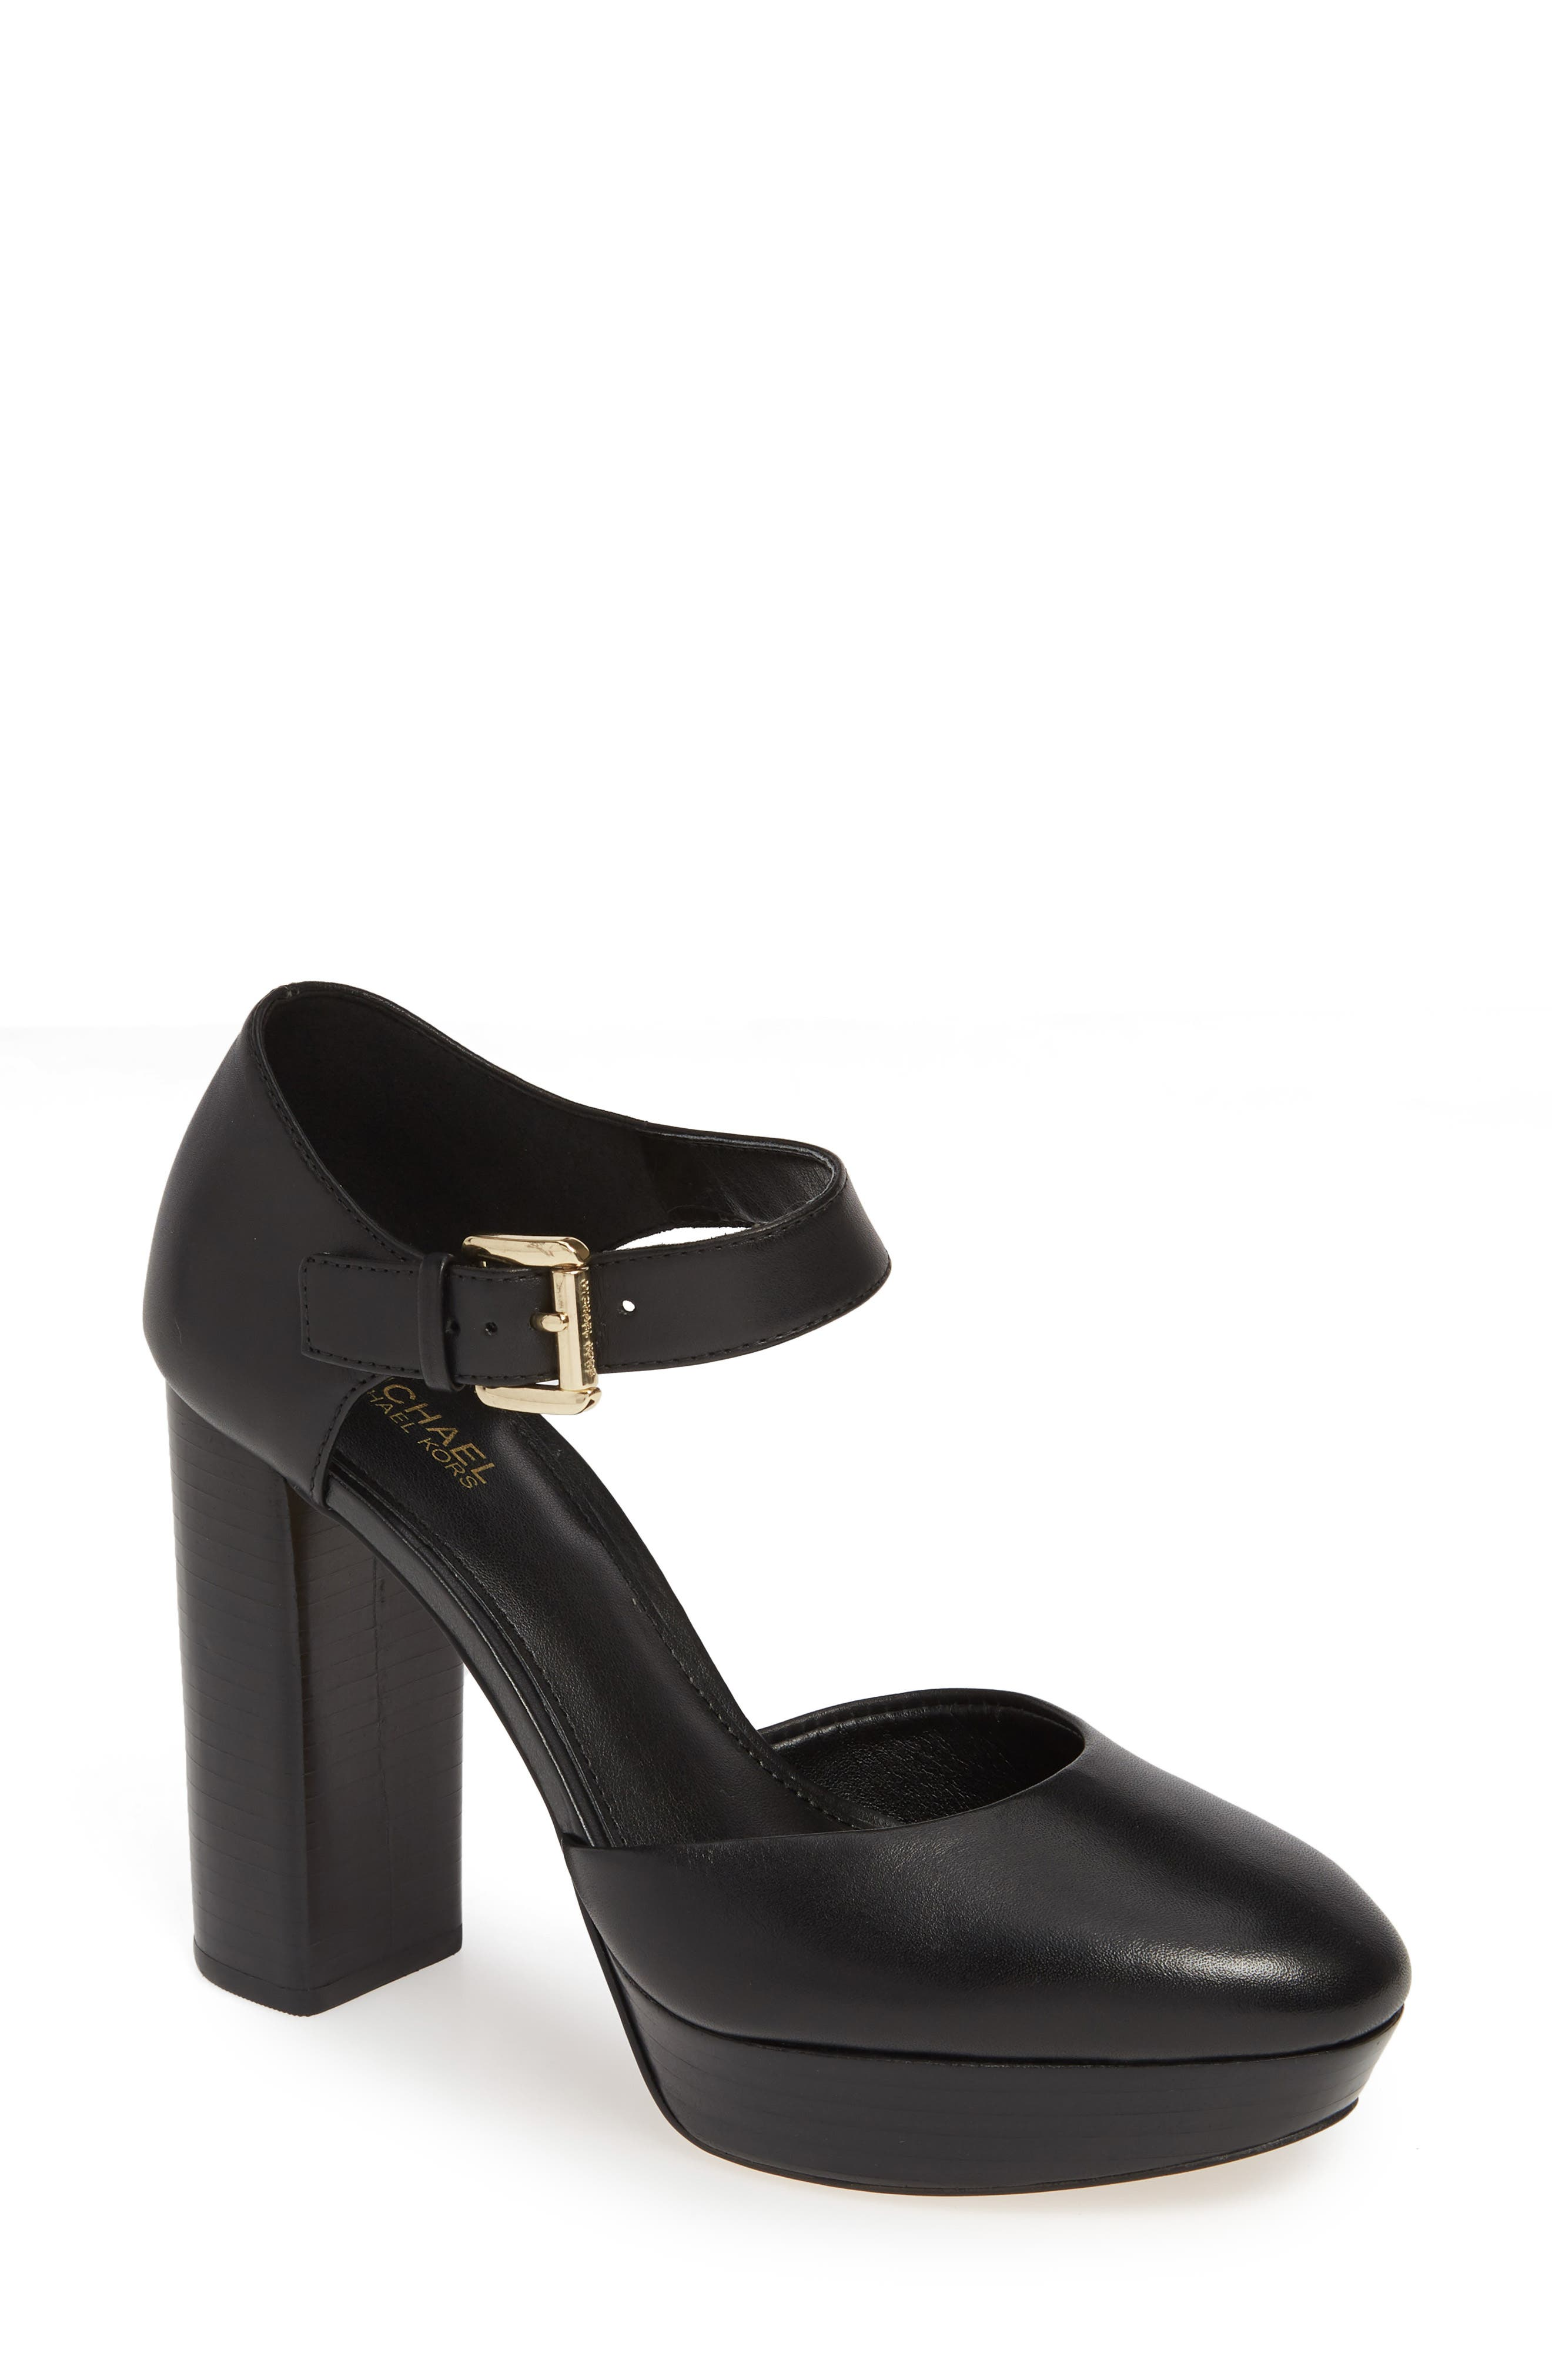 MICHAEL MICHAEL KORS, Platform Pump, Main thumbnail 1, color, BLACK VACHETTA LEATHER